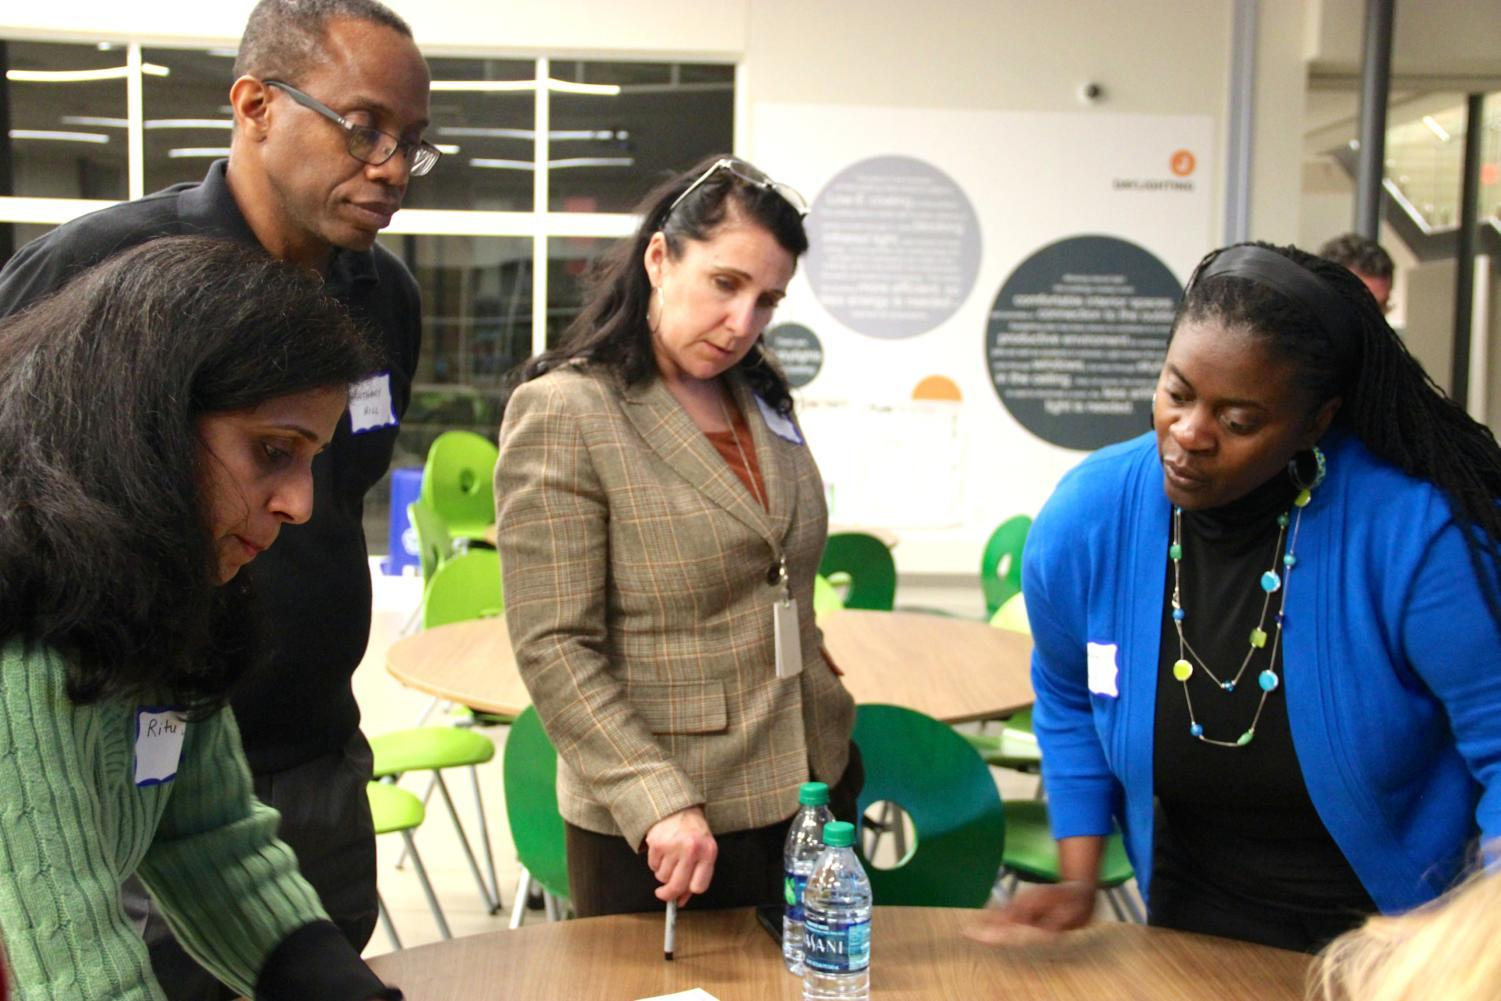 Valley Ranch PTO Board co-president Ritu Sethi, Coppell ISD Trustee Anthony Hill, Executive Director of Teaching and Learning Deana Dynis and Dean of Public Health at West Coast University Sharonda Wallace sort through question cards based on their thoughts on education at the first Educational Summit at Richard J. Lee Elementary on Thursday night. This card sort is one of the activities that will allow Coppell ISD to analyze feedback for their strategic design efforts.